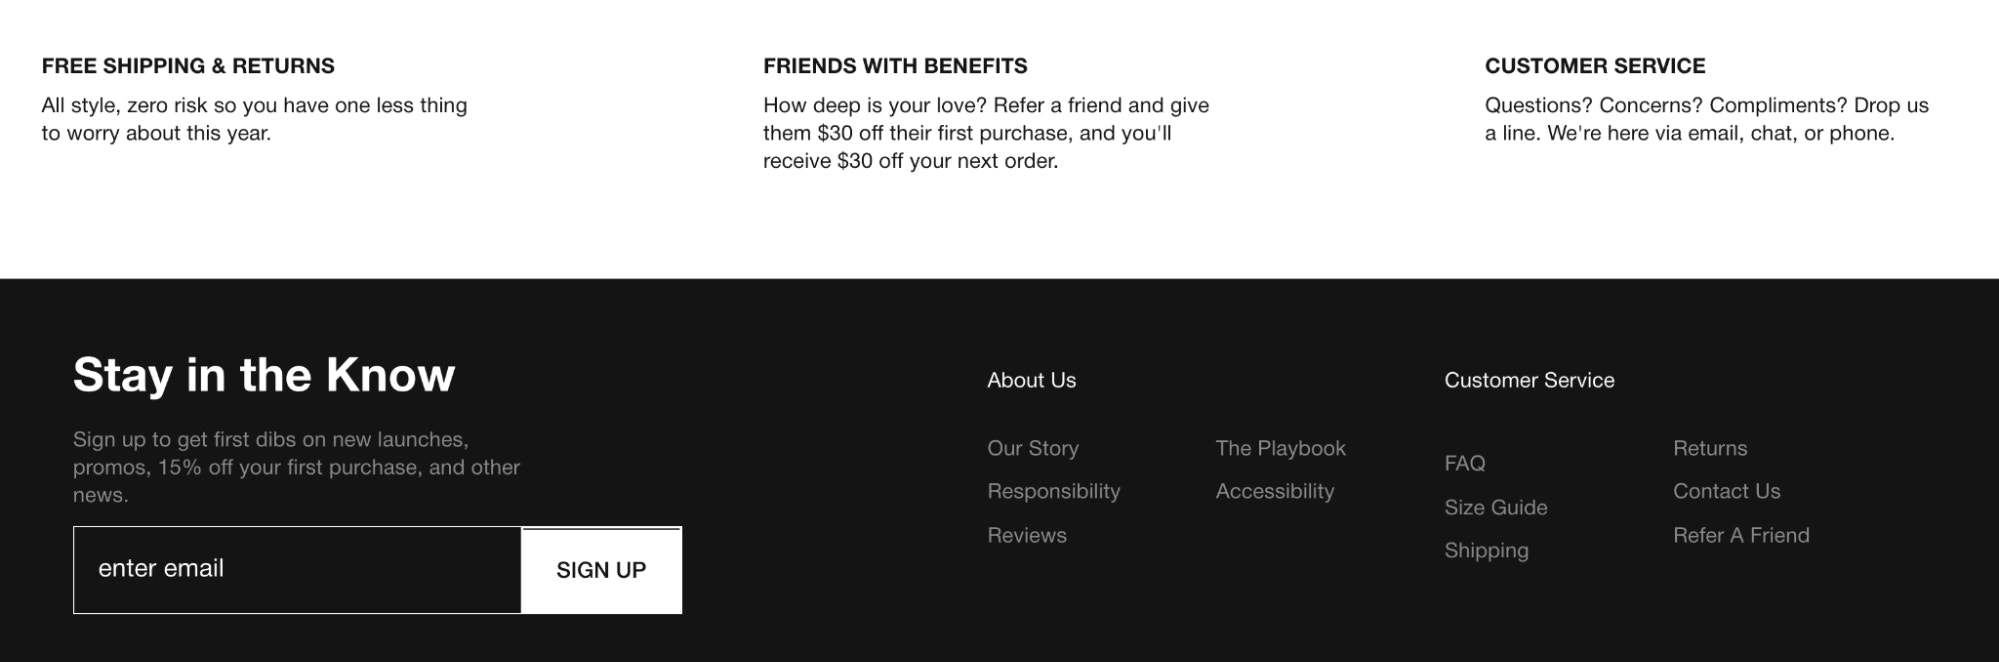 GREATS' product pages use copy that matches their brand's voice and tone.